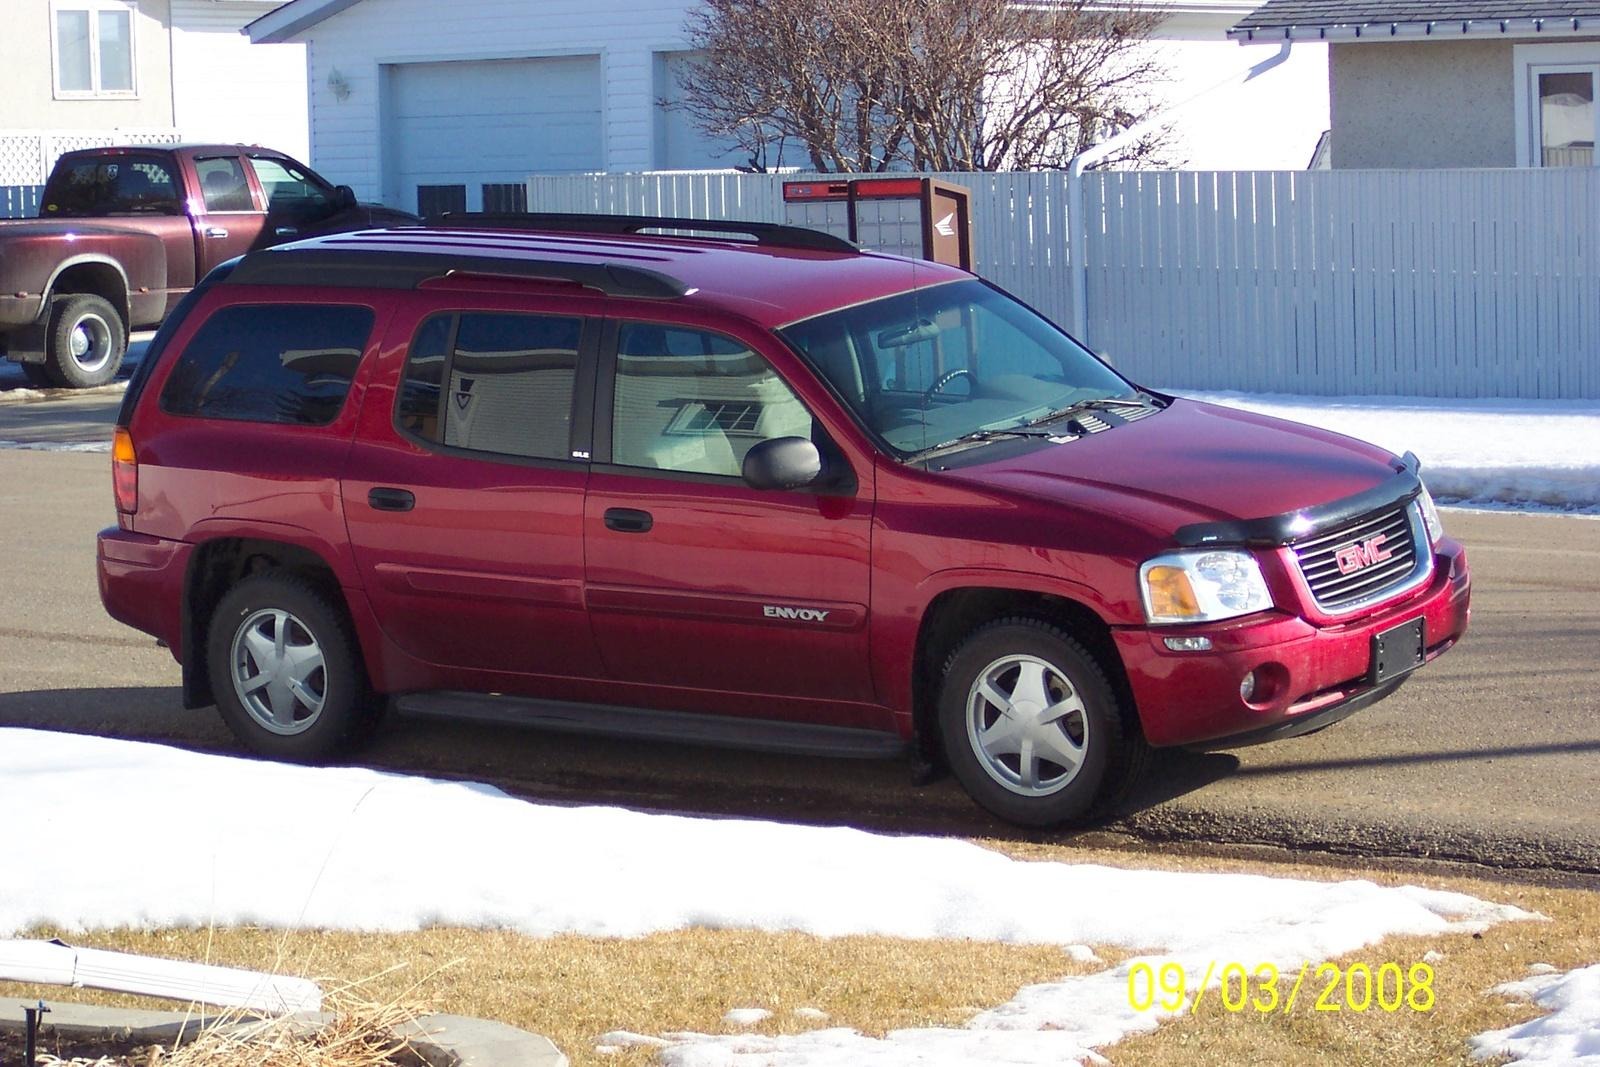 800 1024 1280 1600 origin 2002 GMC Envoy ...